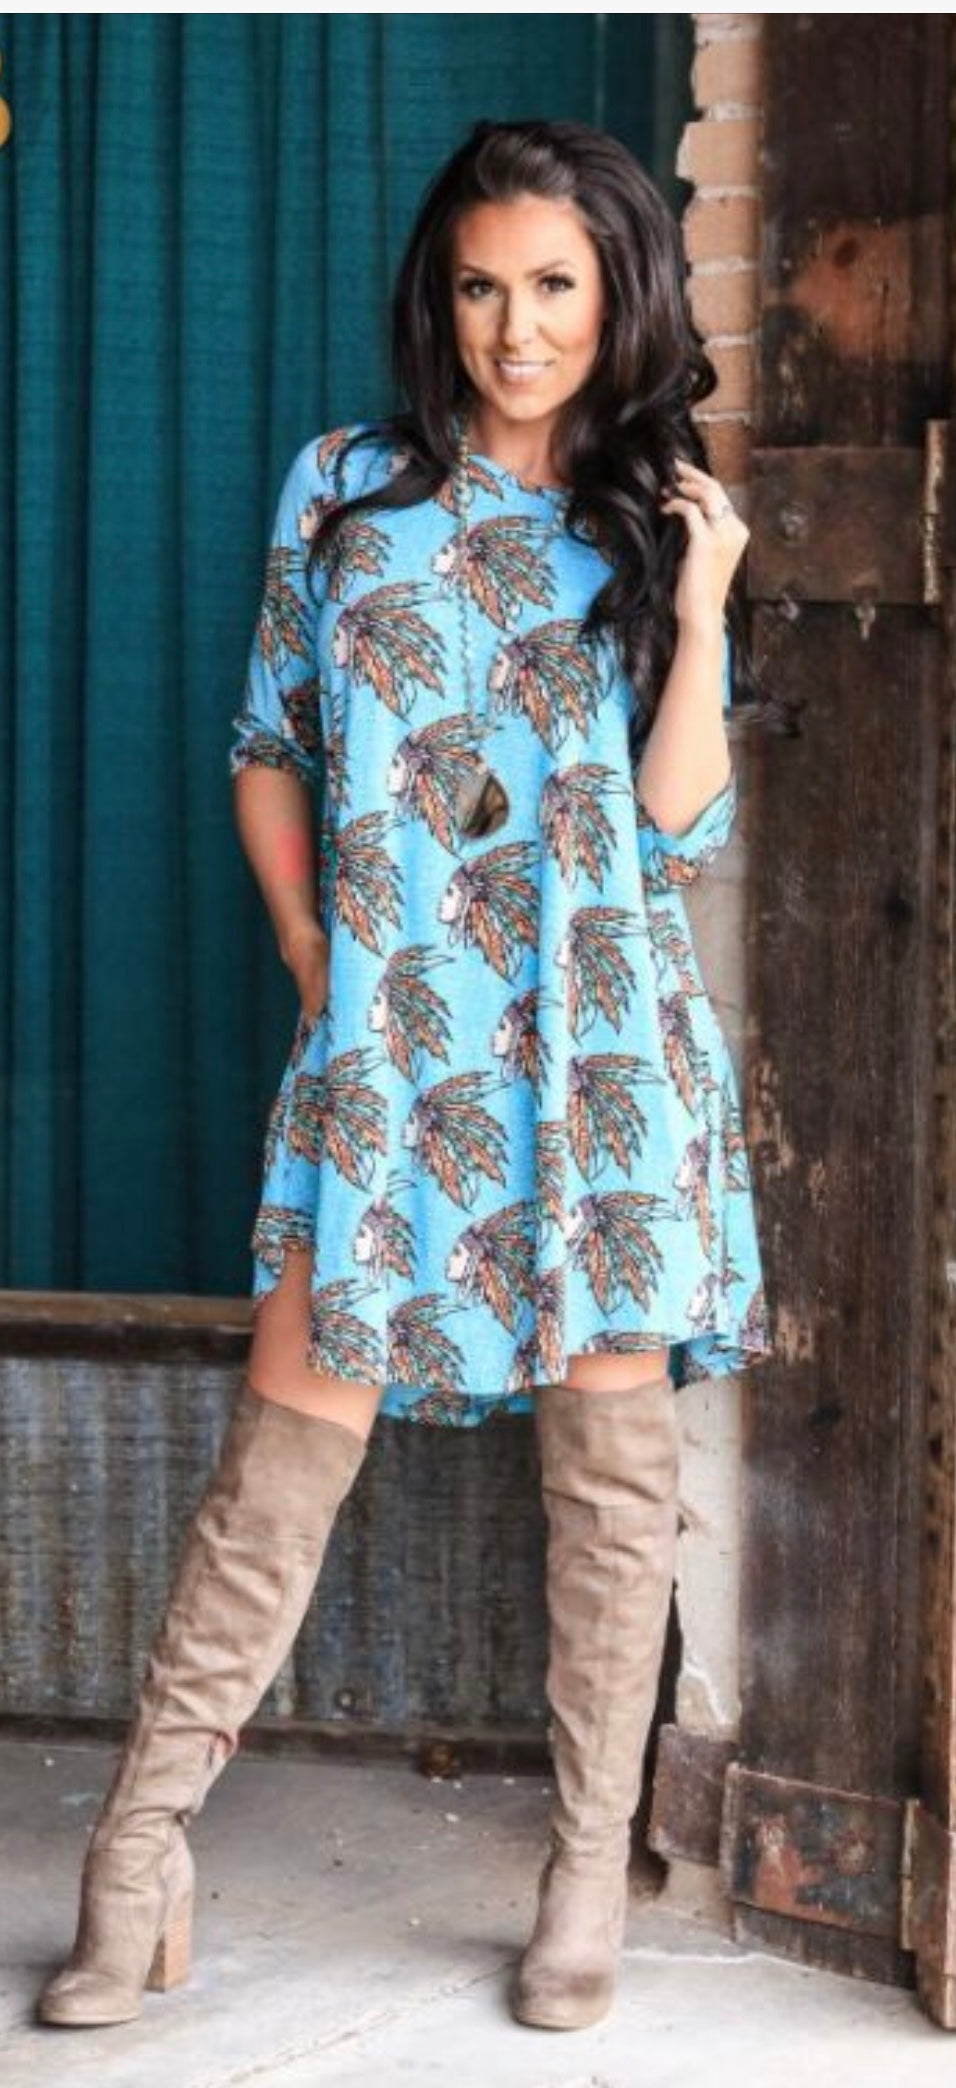 Turquoise HeadDress 3/4 sleeve Dress